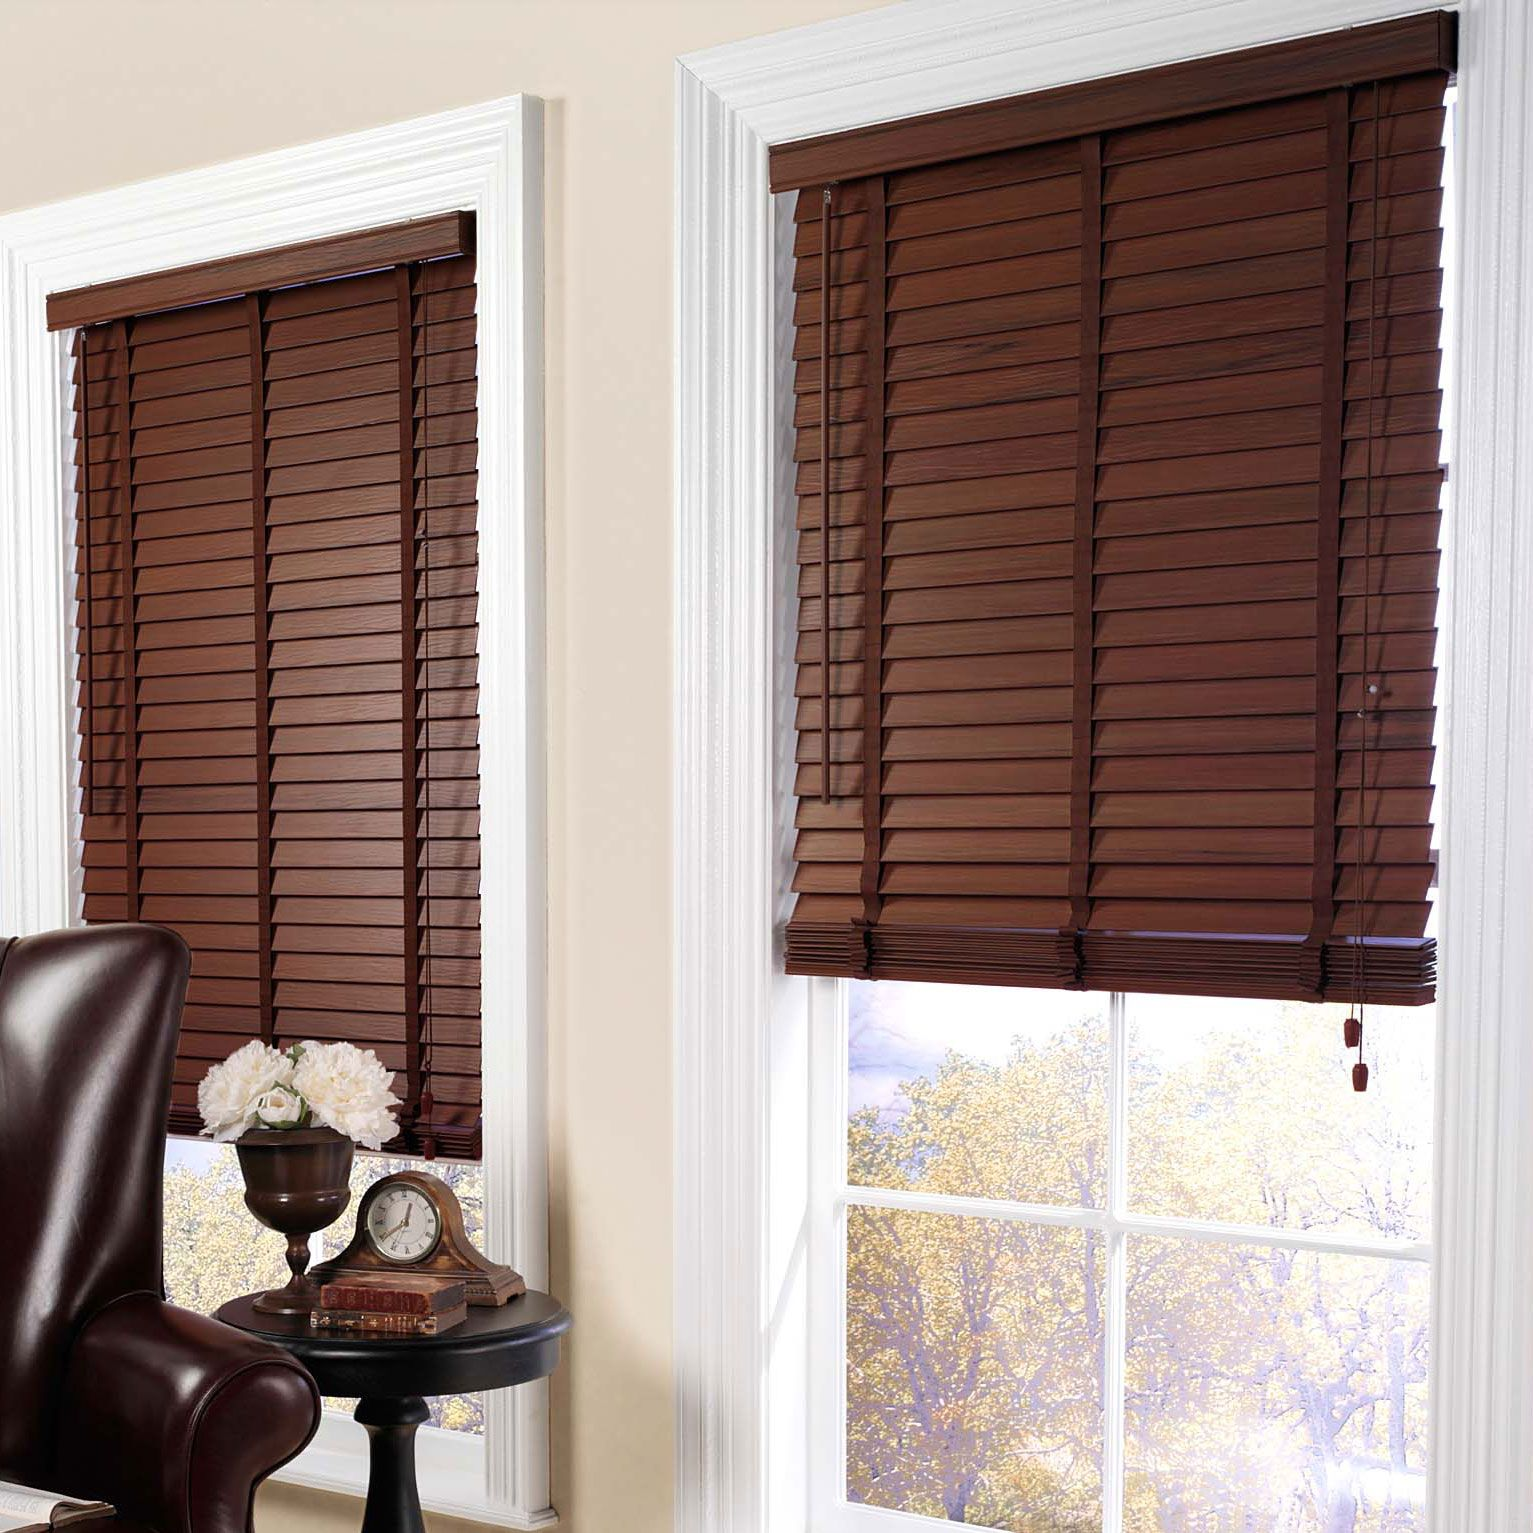 /uploads/pages/164/wood_venetian_blinds_11.jpg